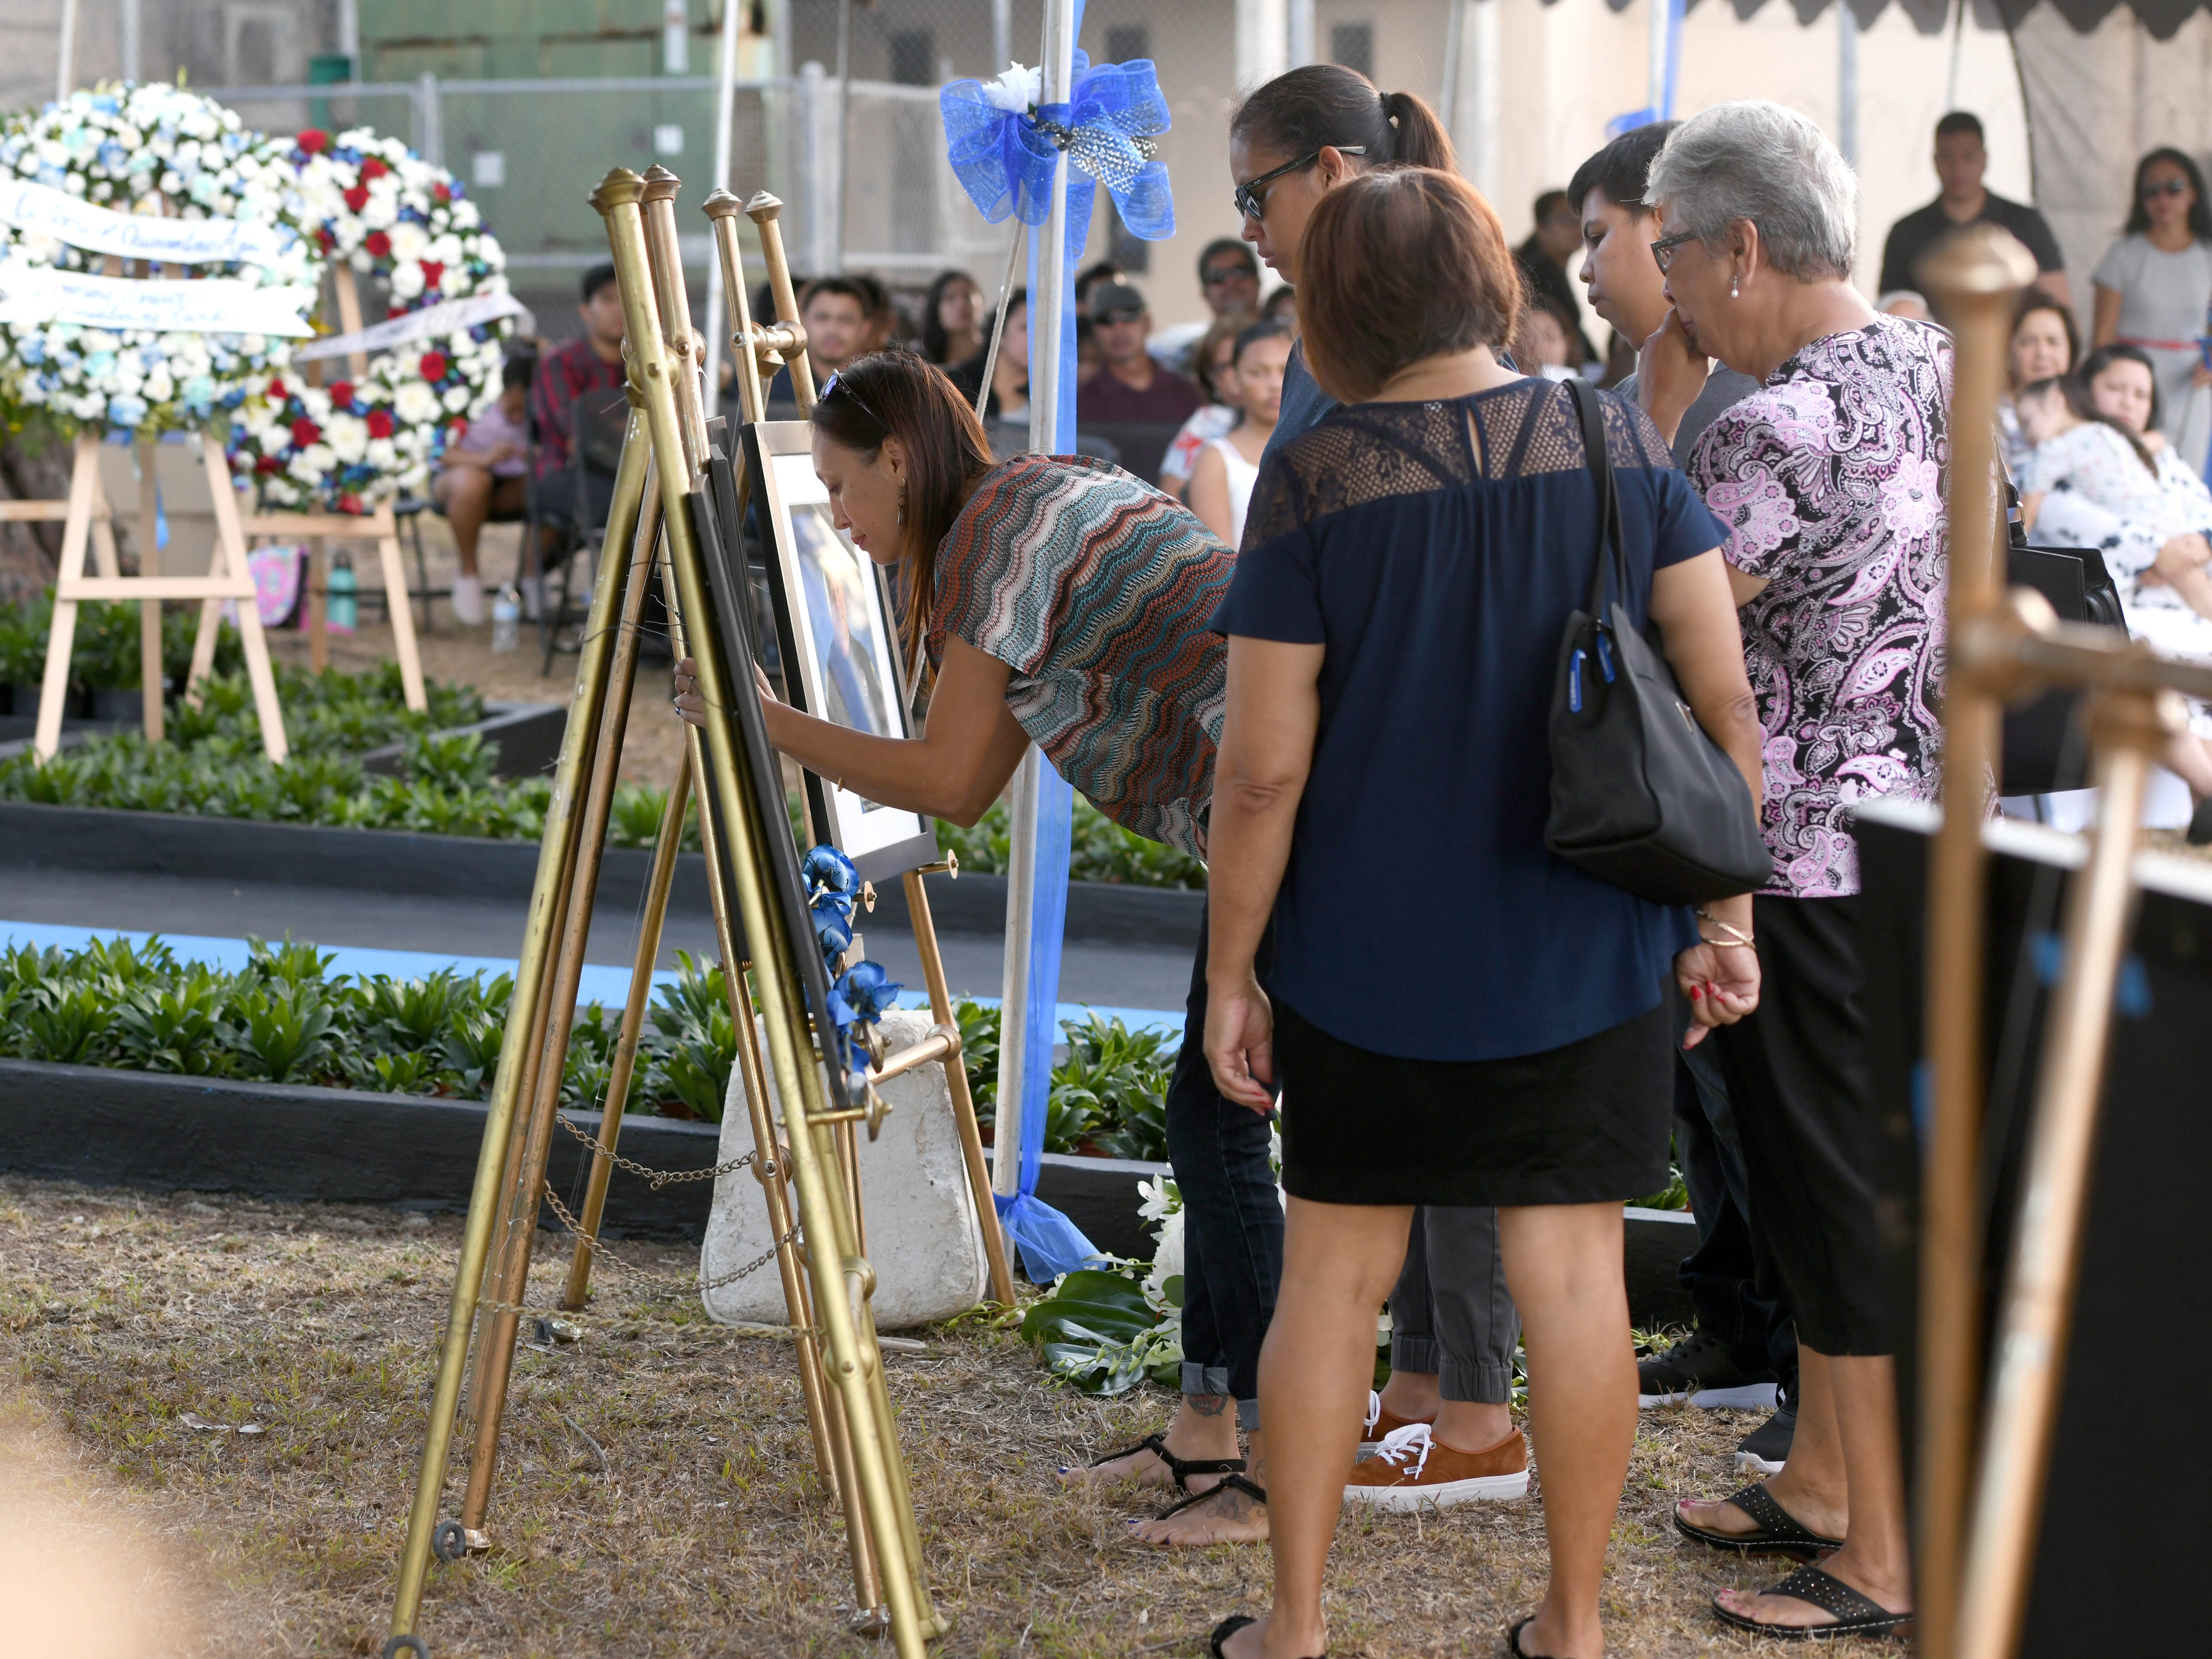 The service of Police Officer Frankie Eugene Smith is remembered during the Peace Officers' Memorial Service and Wreath Laying Ceremony held at the Guam Police Department's Badge Memorial Park in Hagåtña on Wednesday, May 15, 2019.